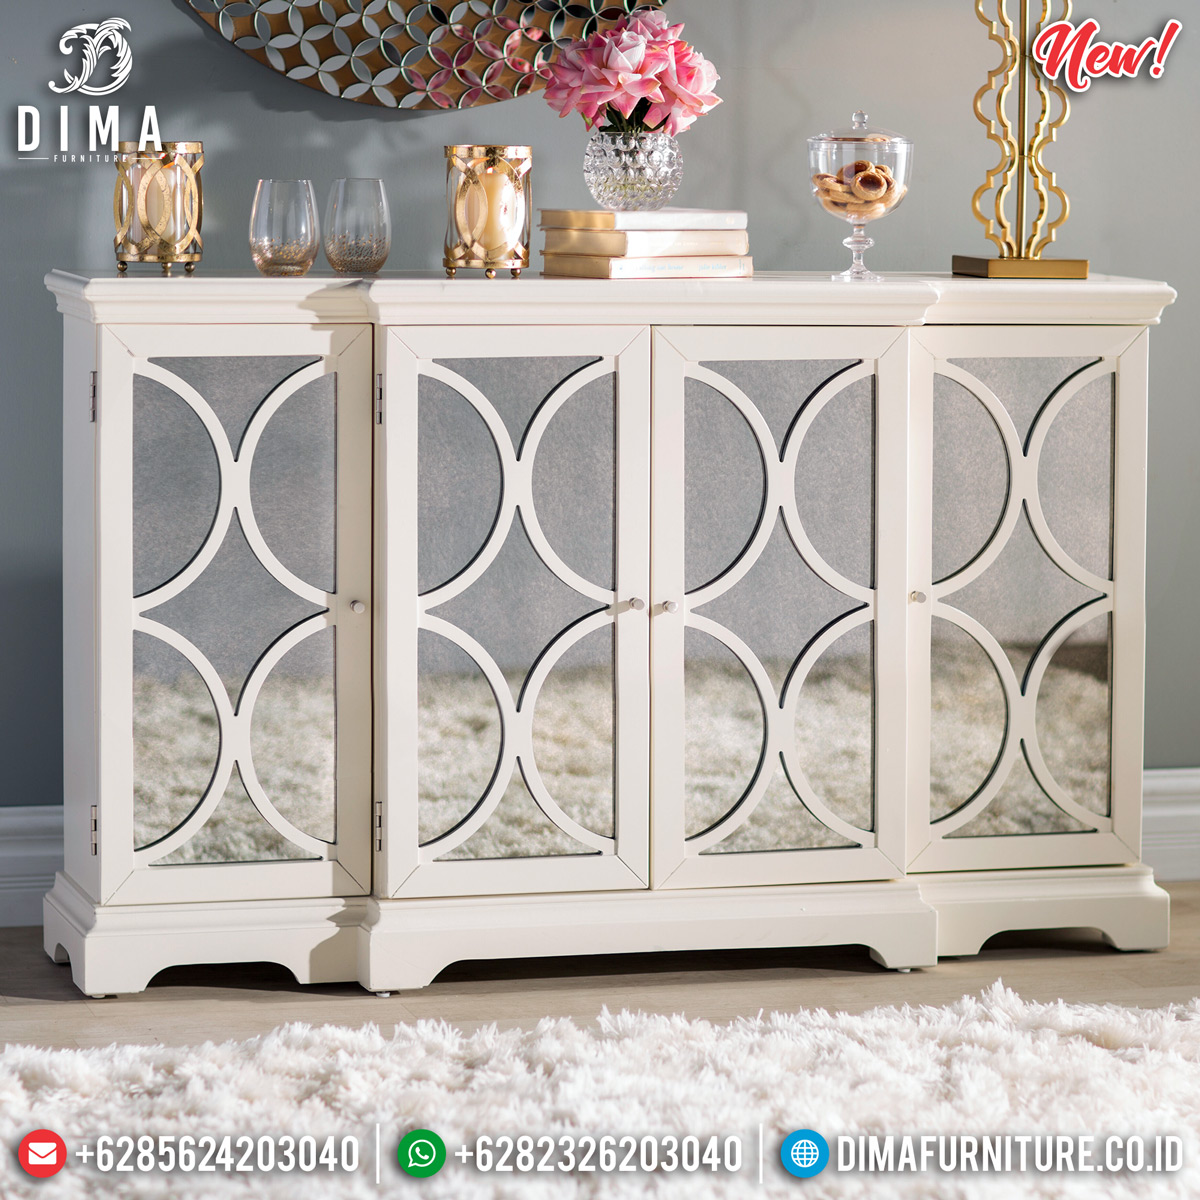 New Desain Meja Konsul Minimalis Kaca Solid Wood Guaranteed BT-0718